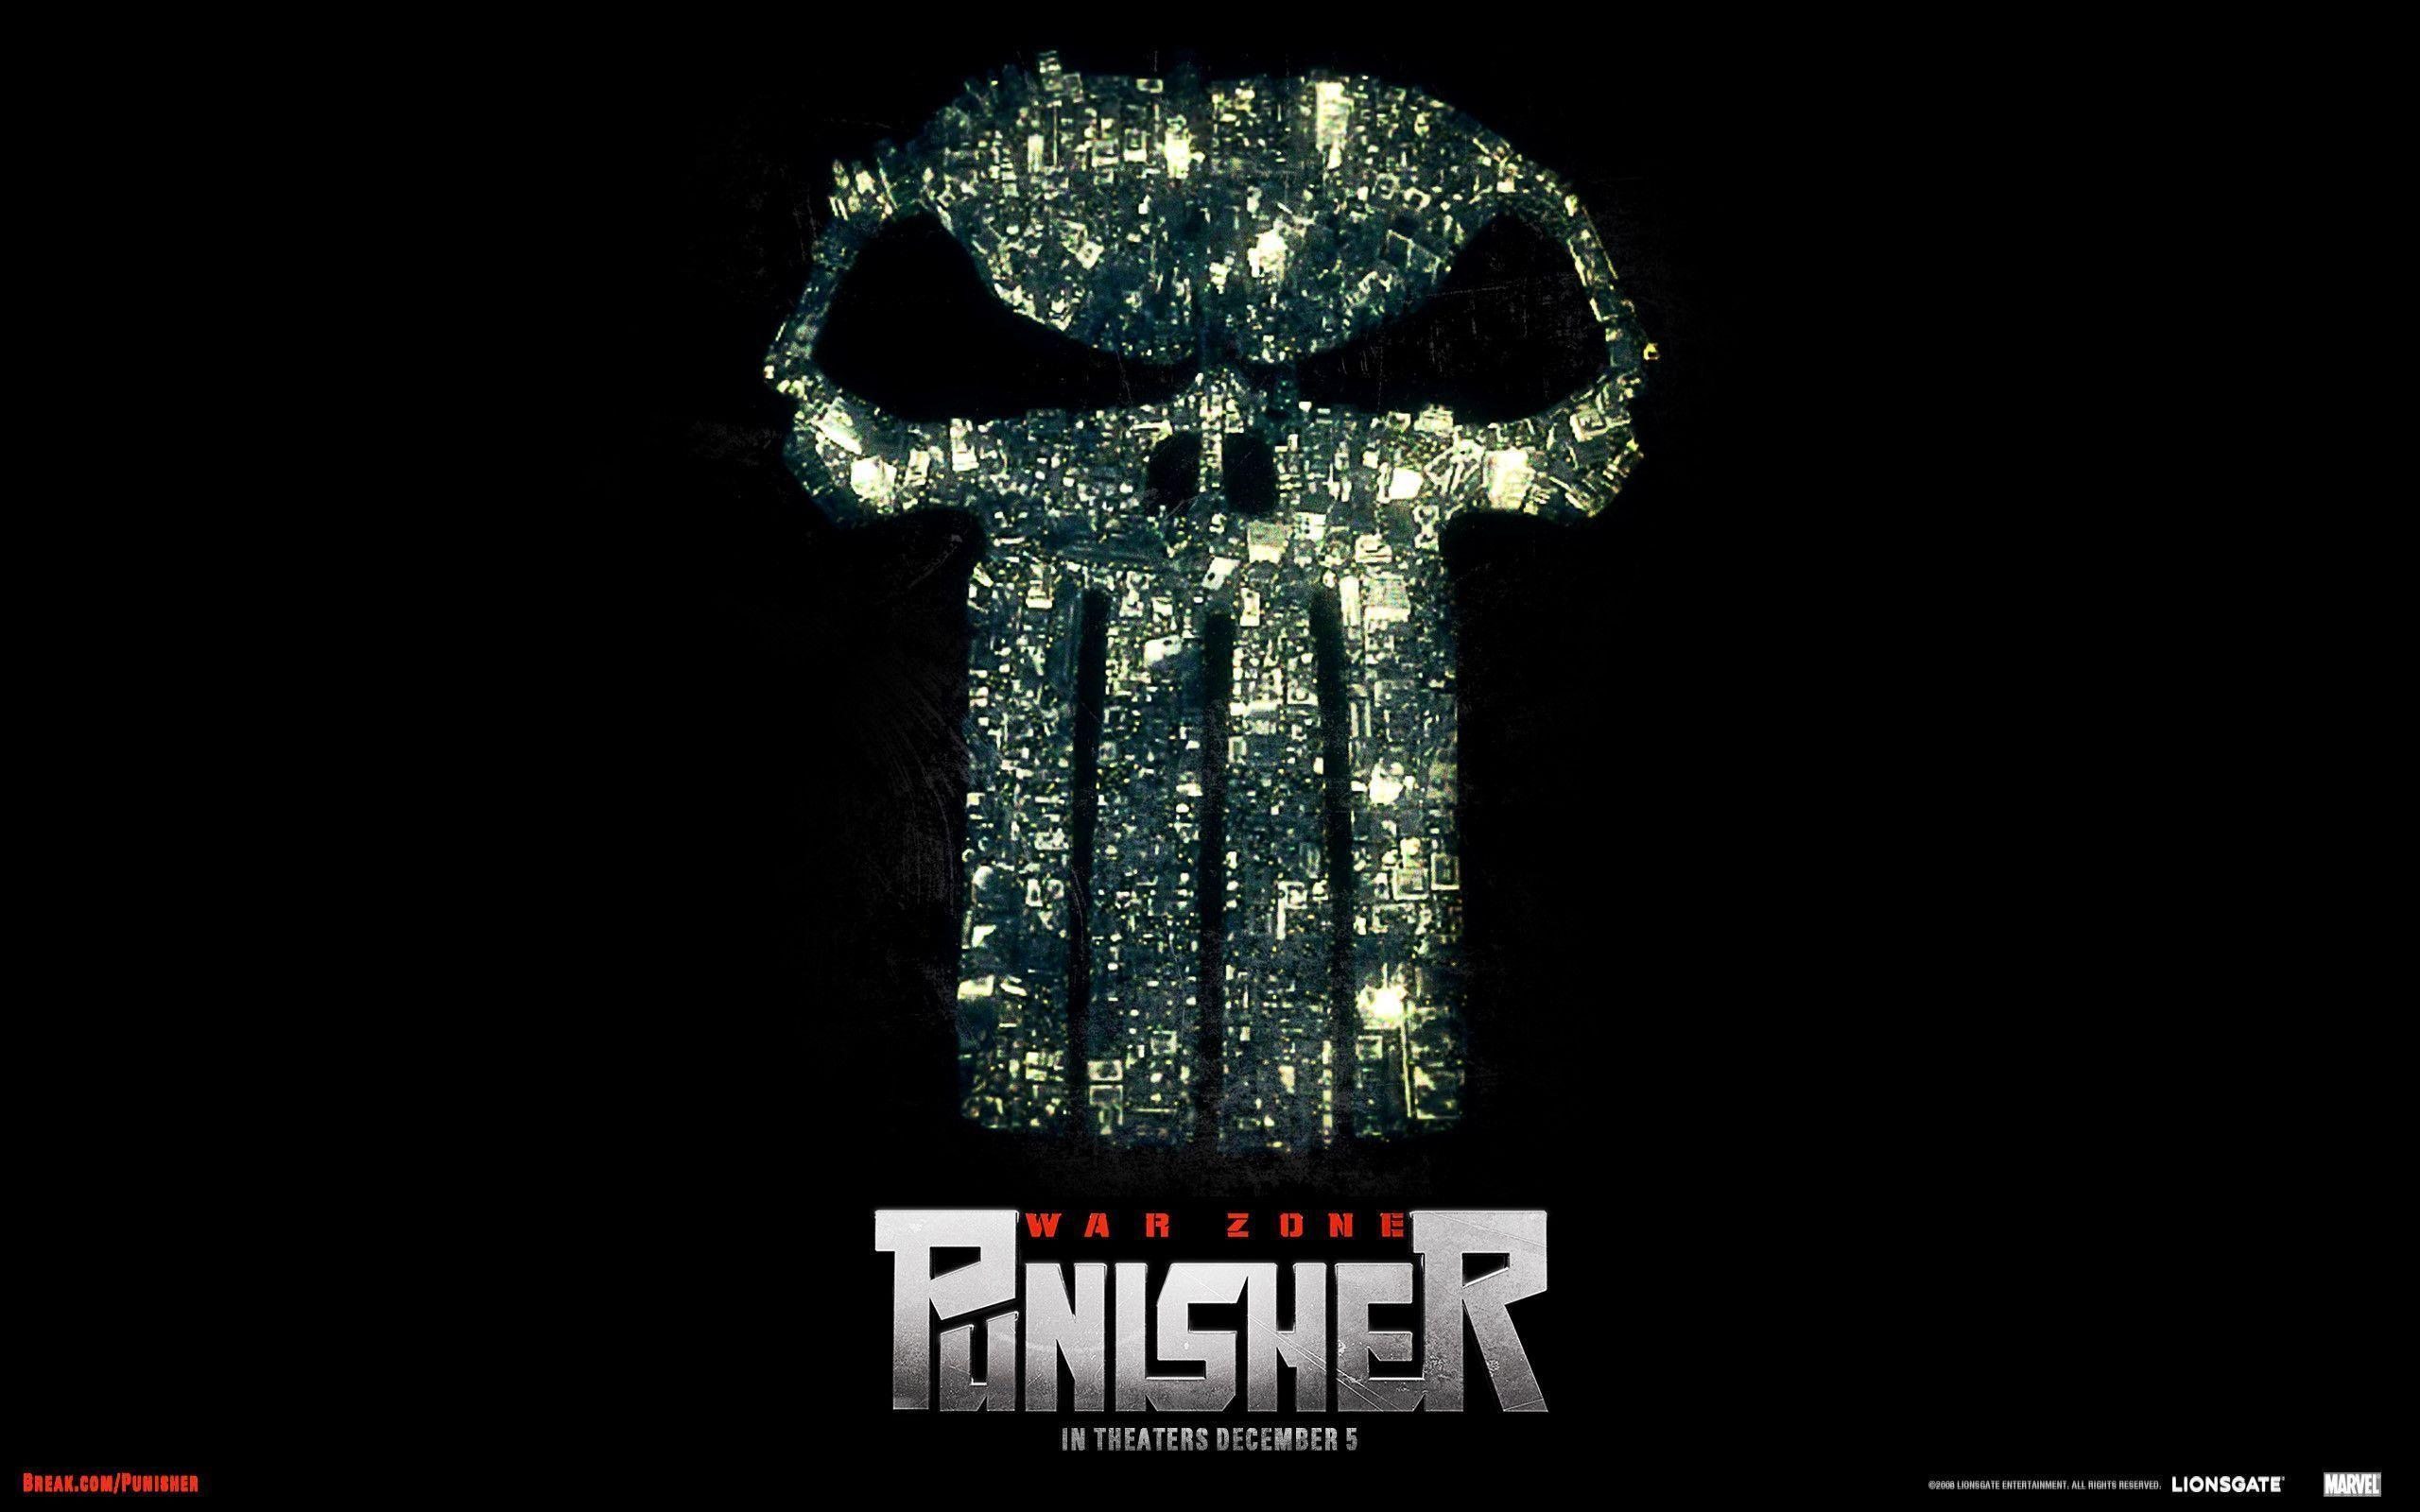 punisher logo wallpapers - photo #40